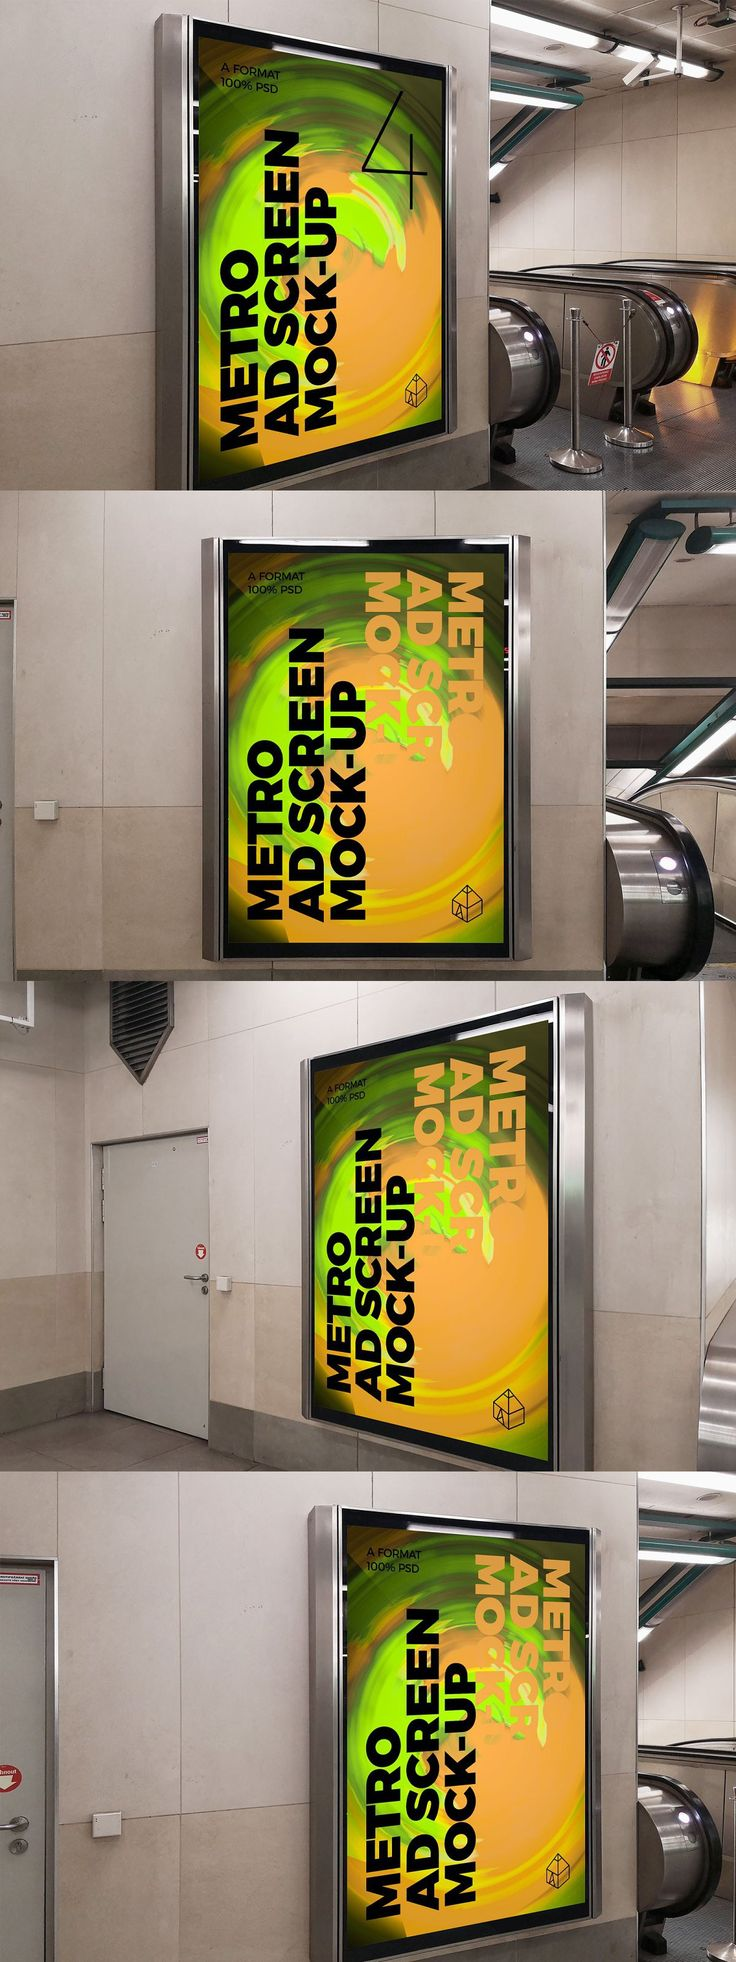 Metro Ad Screen Mock-Ups 8 v1